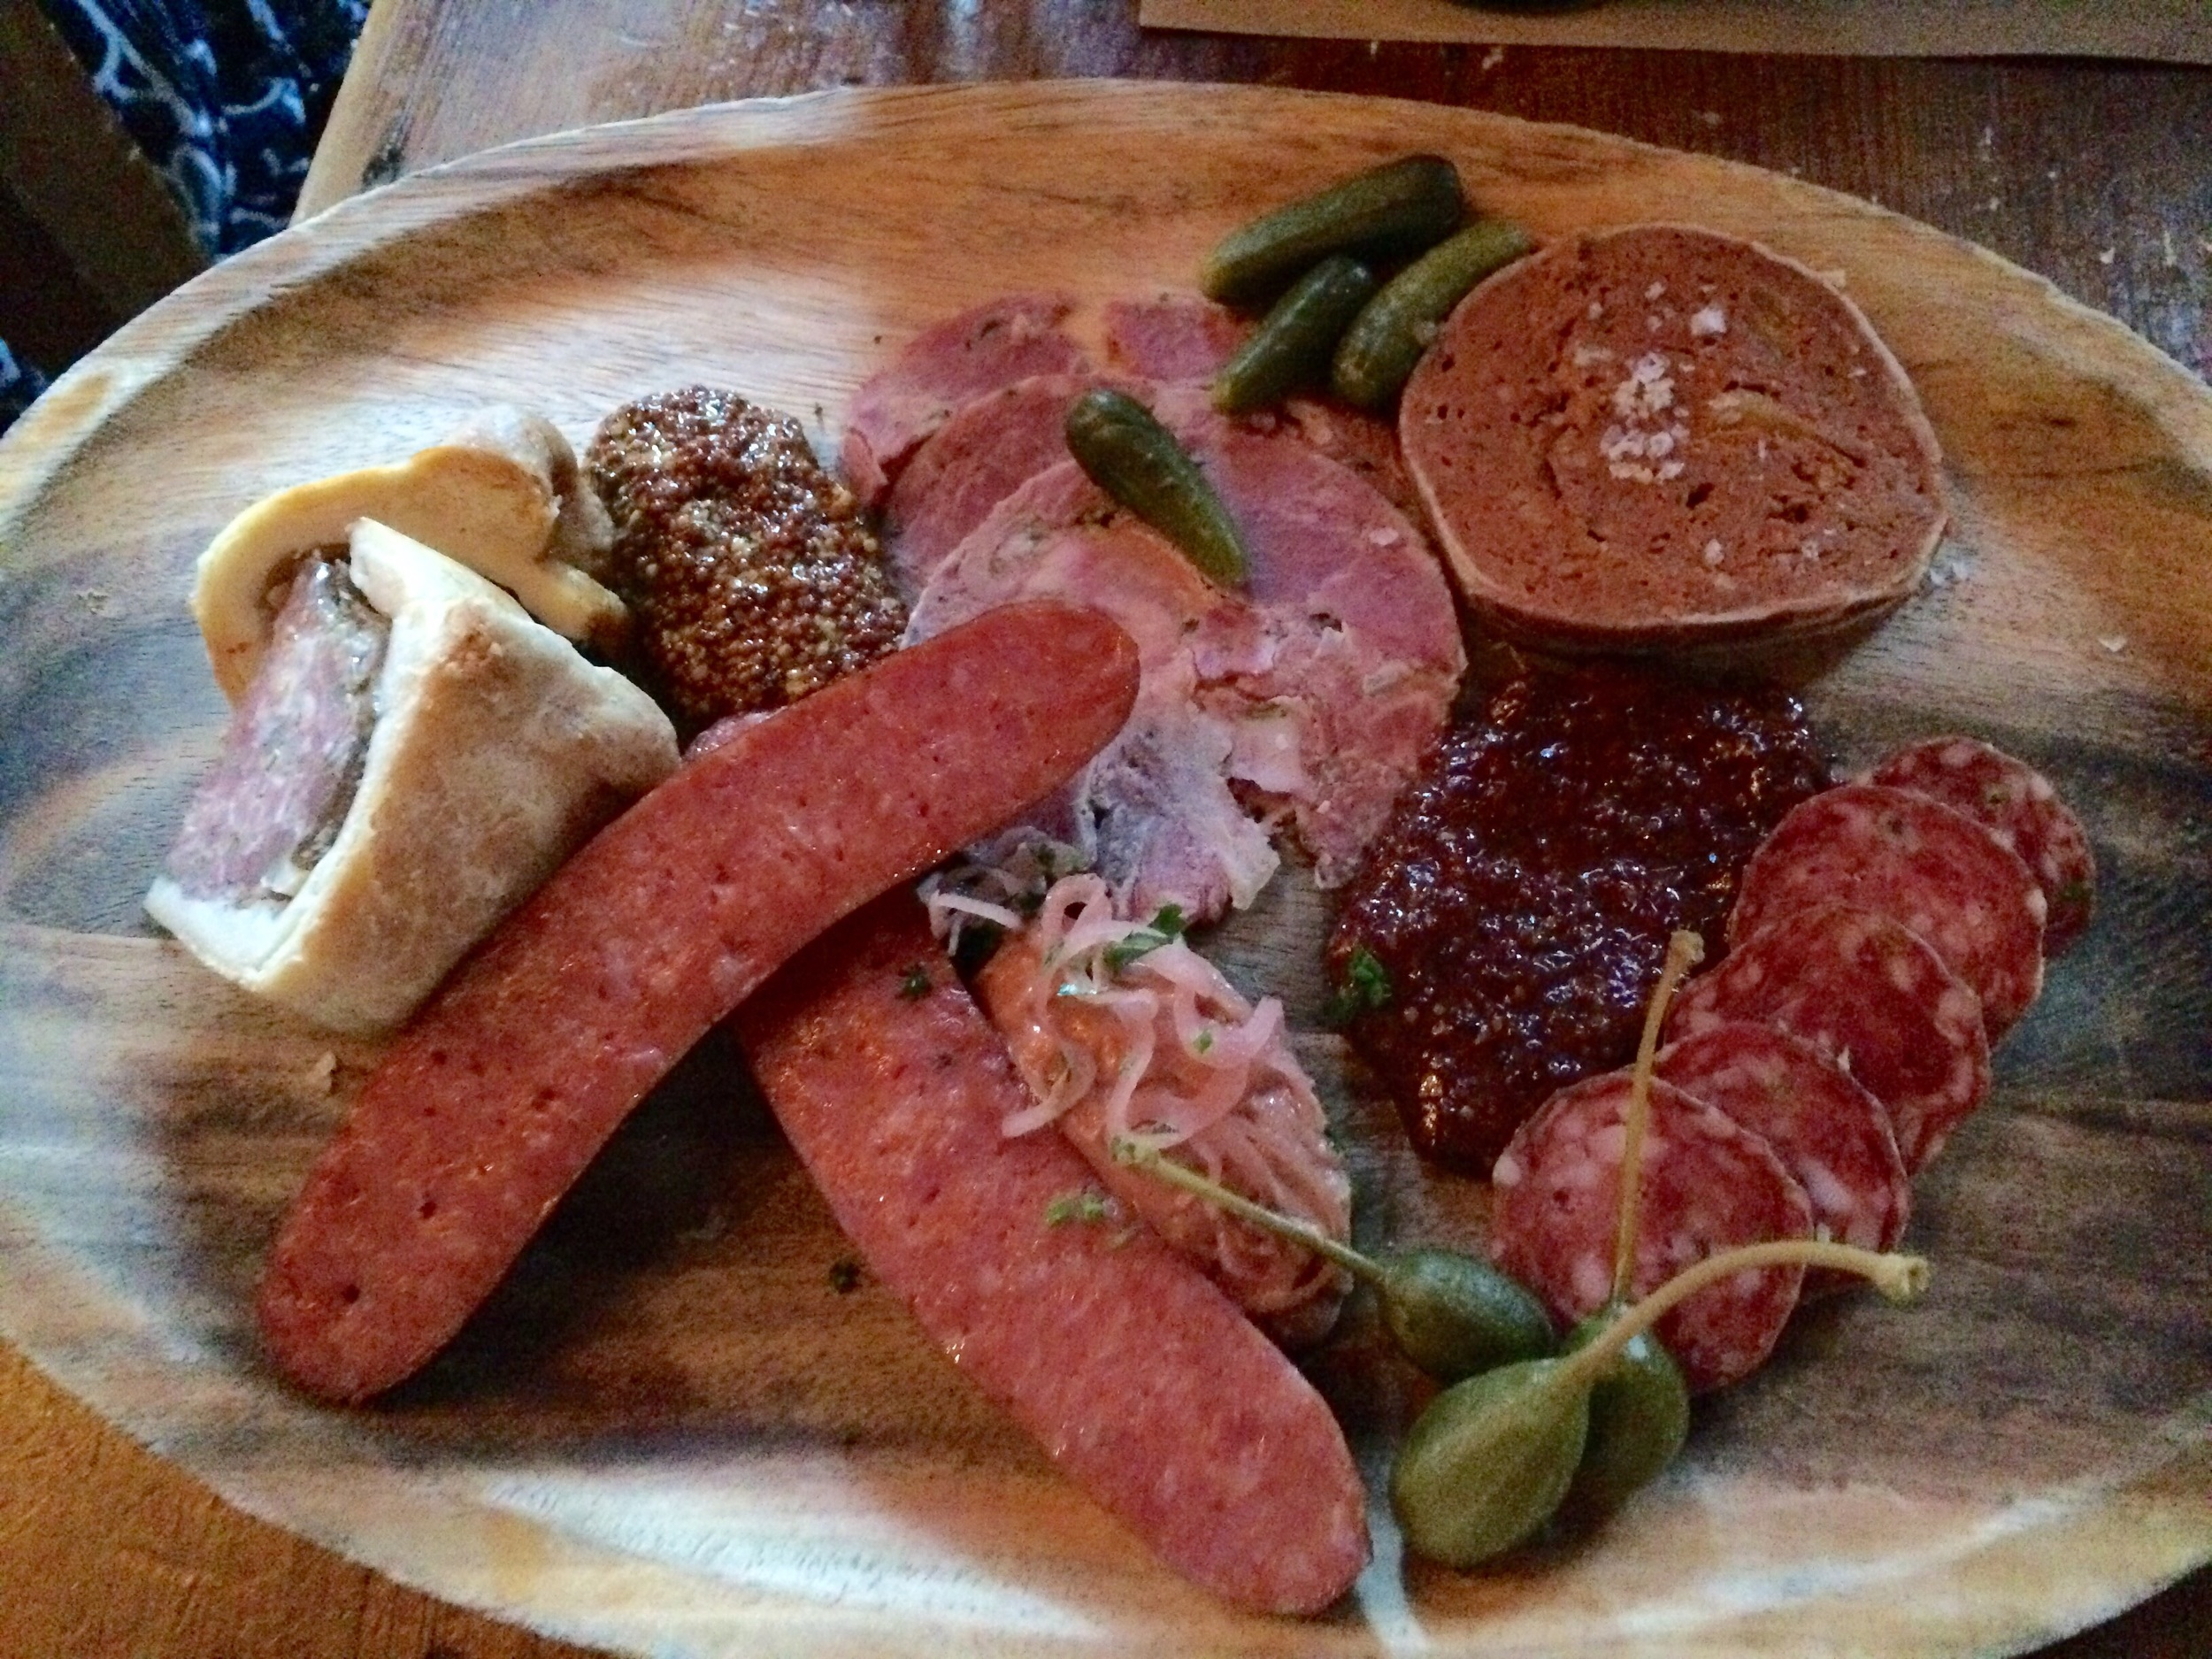 Charcuterie plate with whole grain mustard perfection.